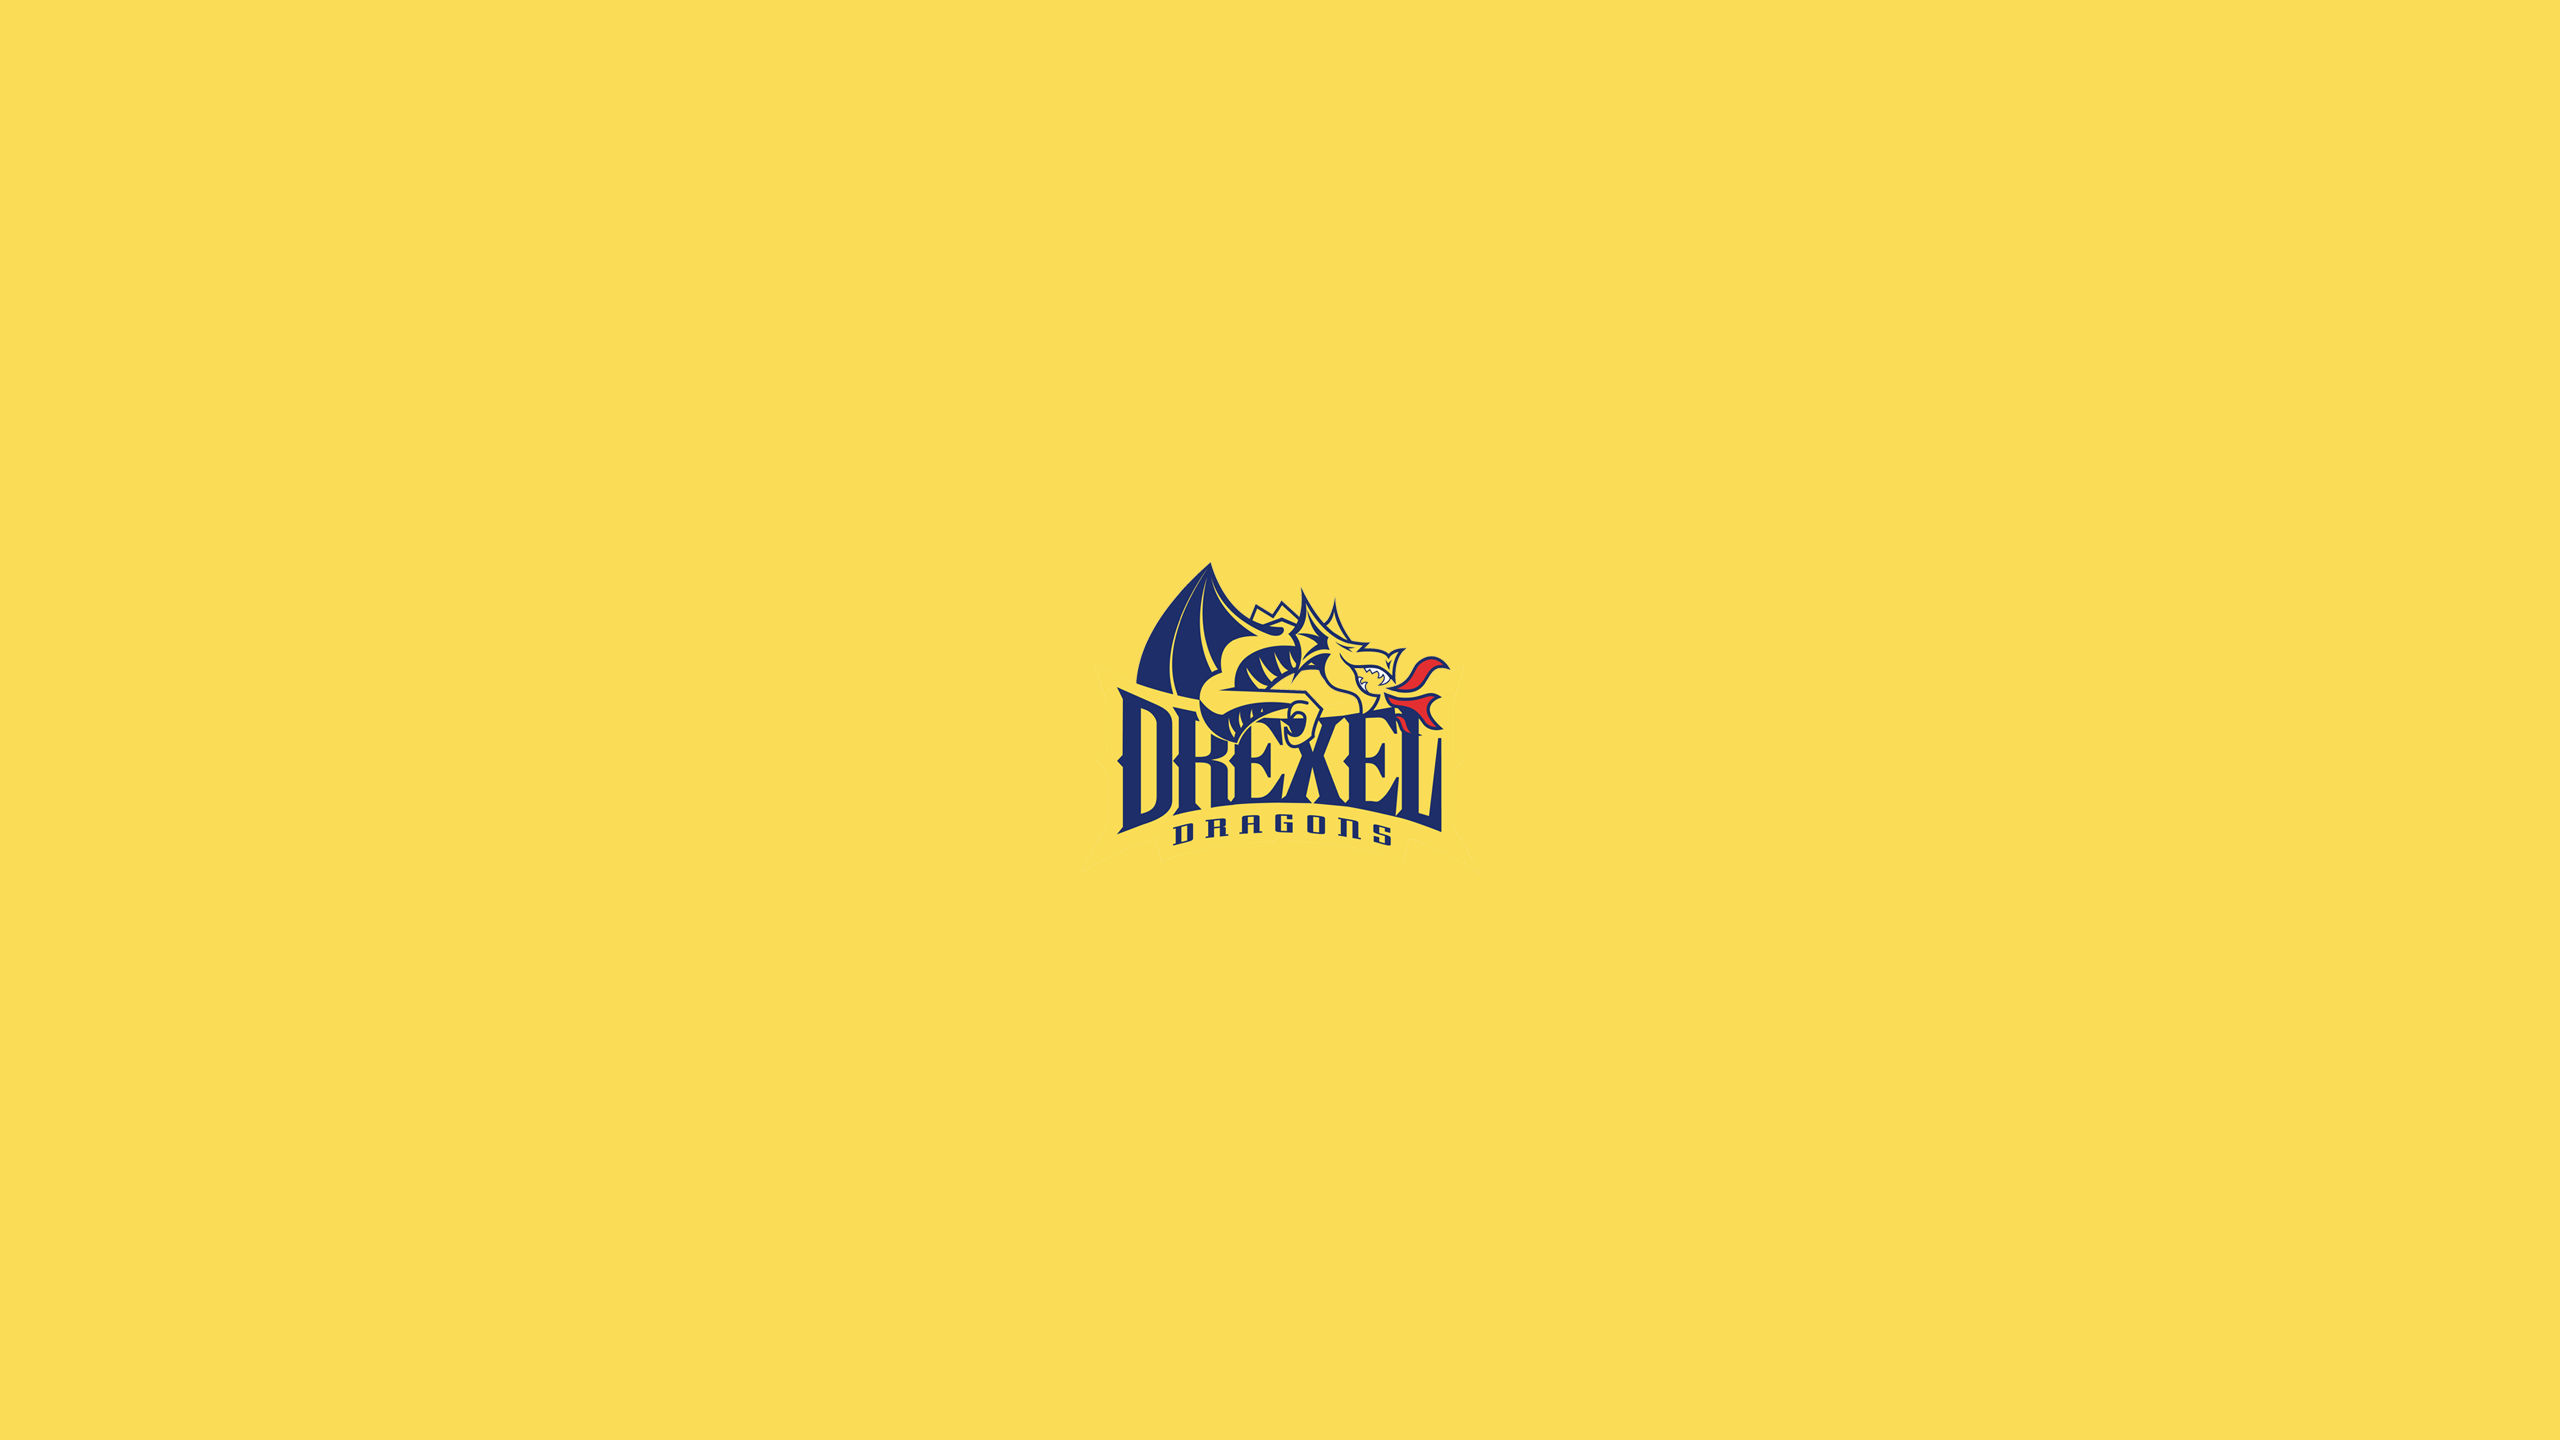 Drexel University Dragons